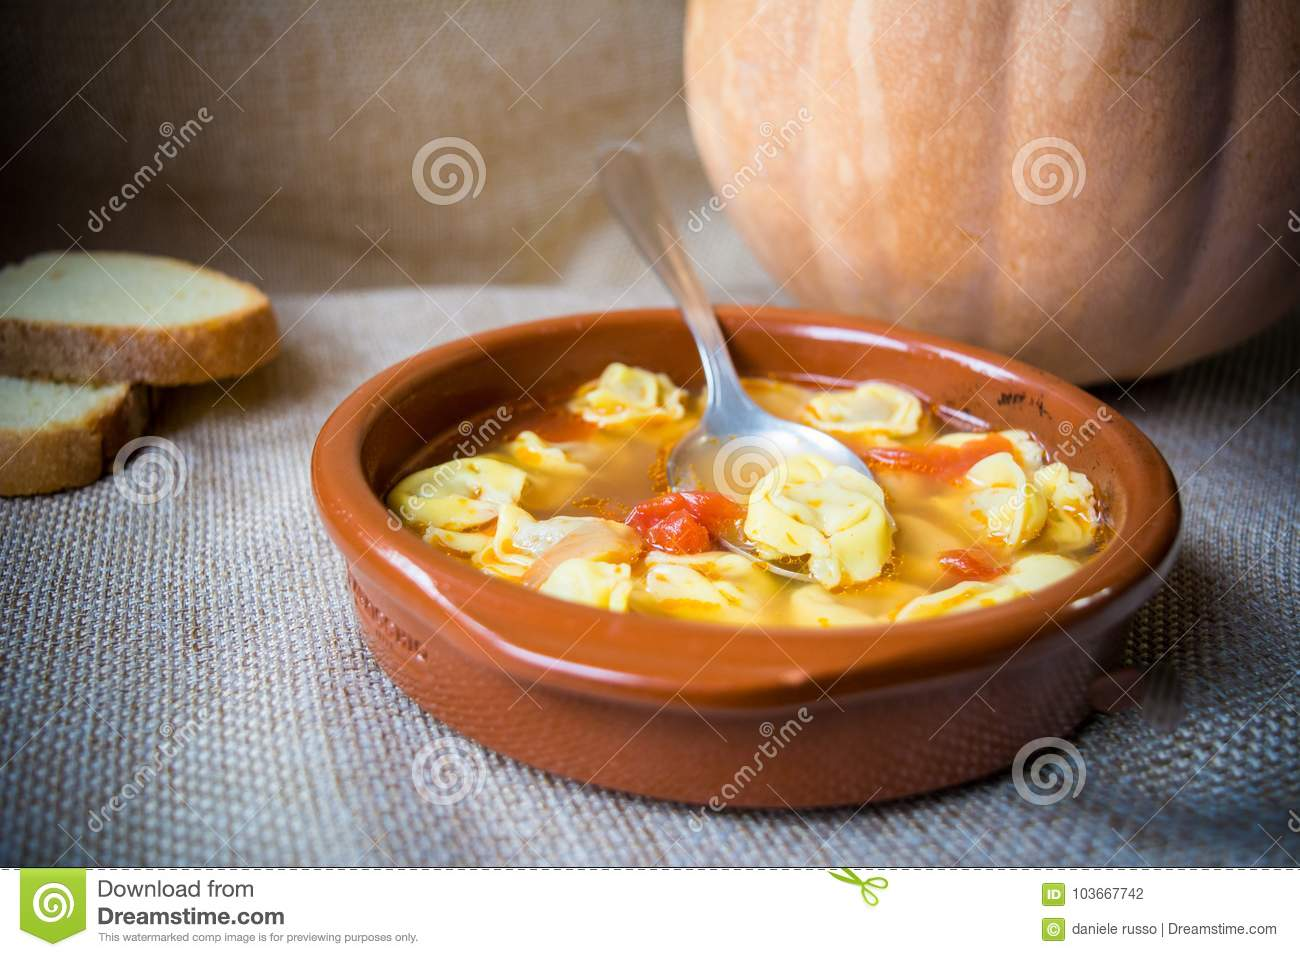 Italian traditional food called tortellini in brodo with bread